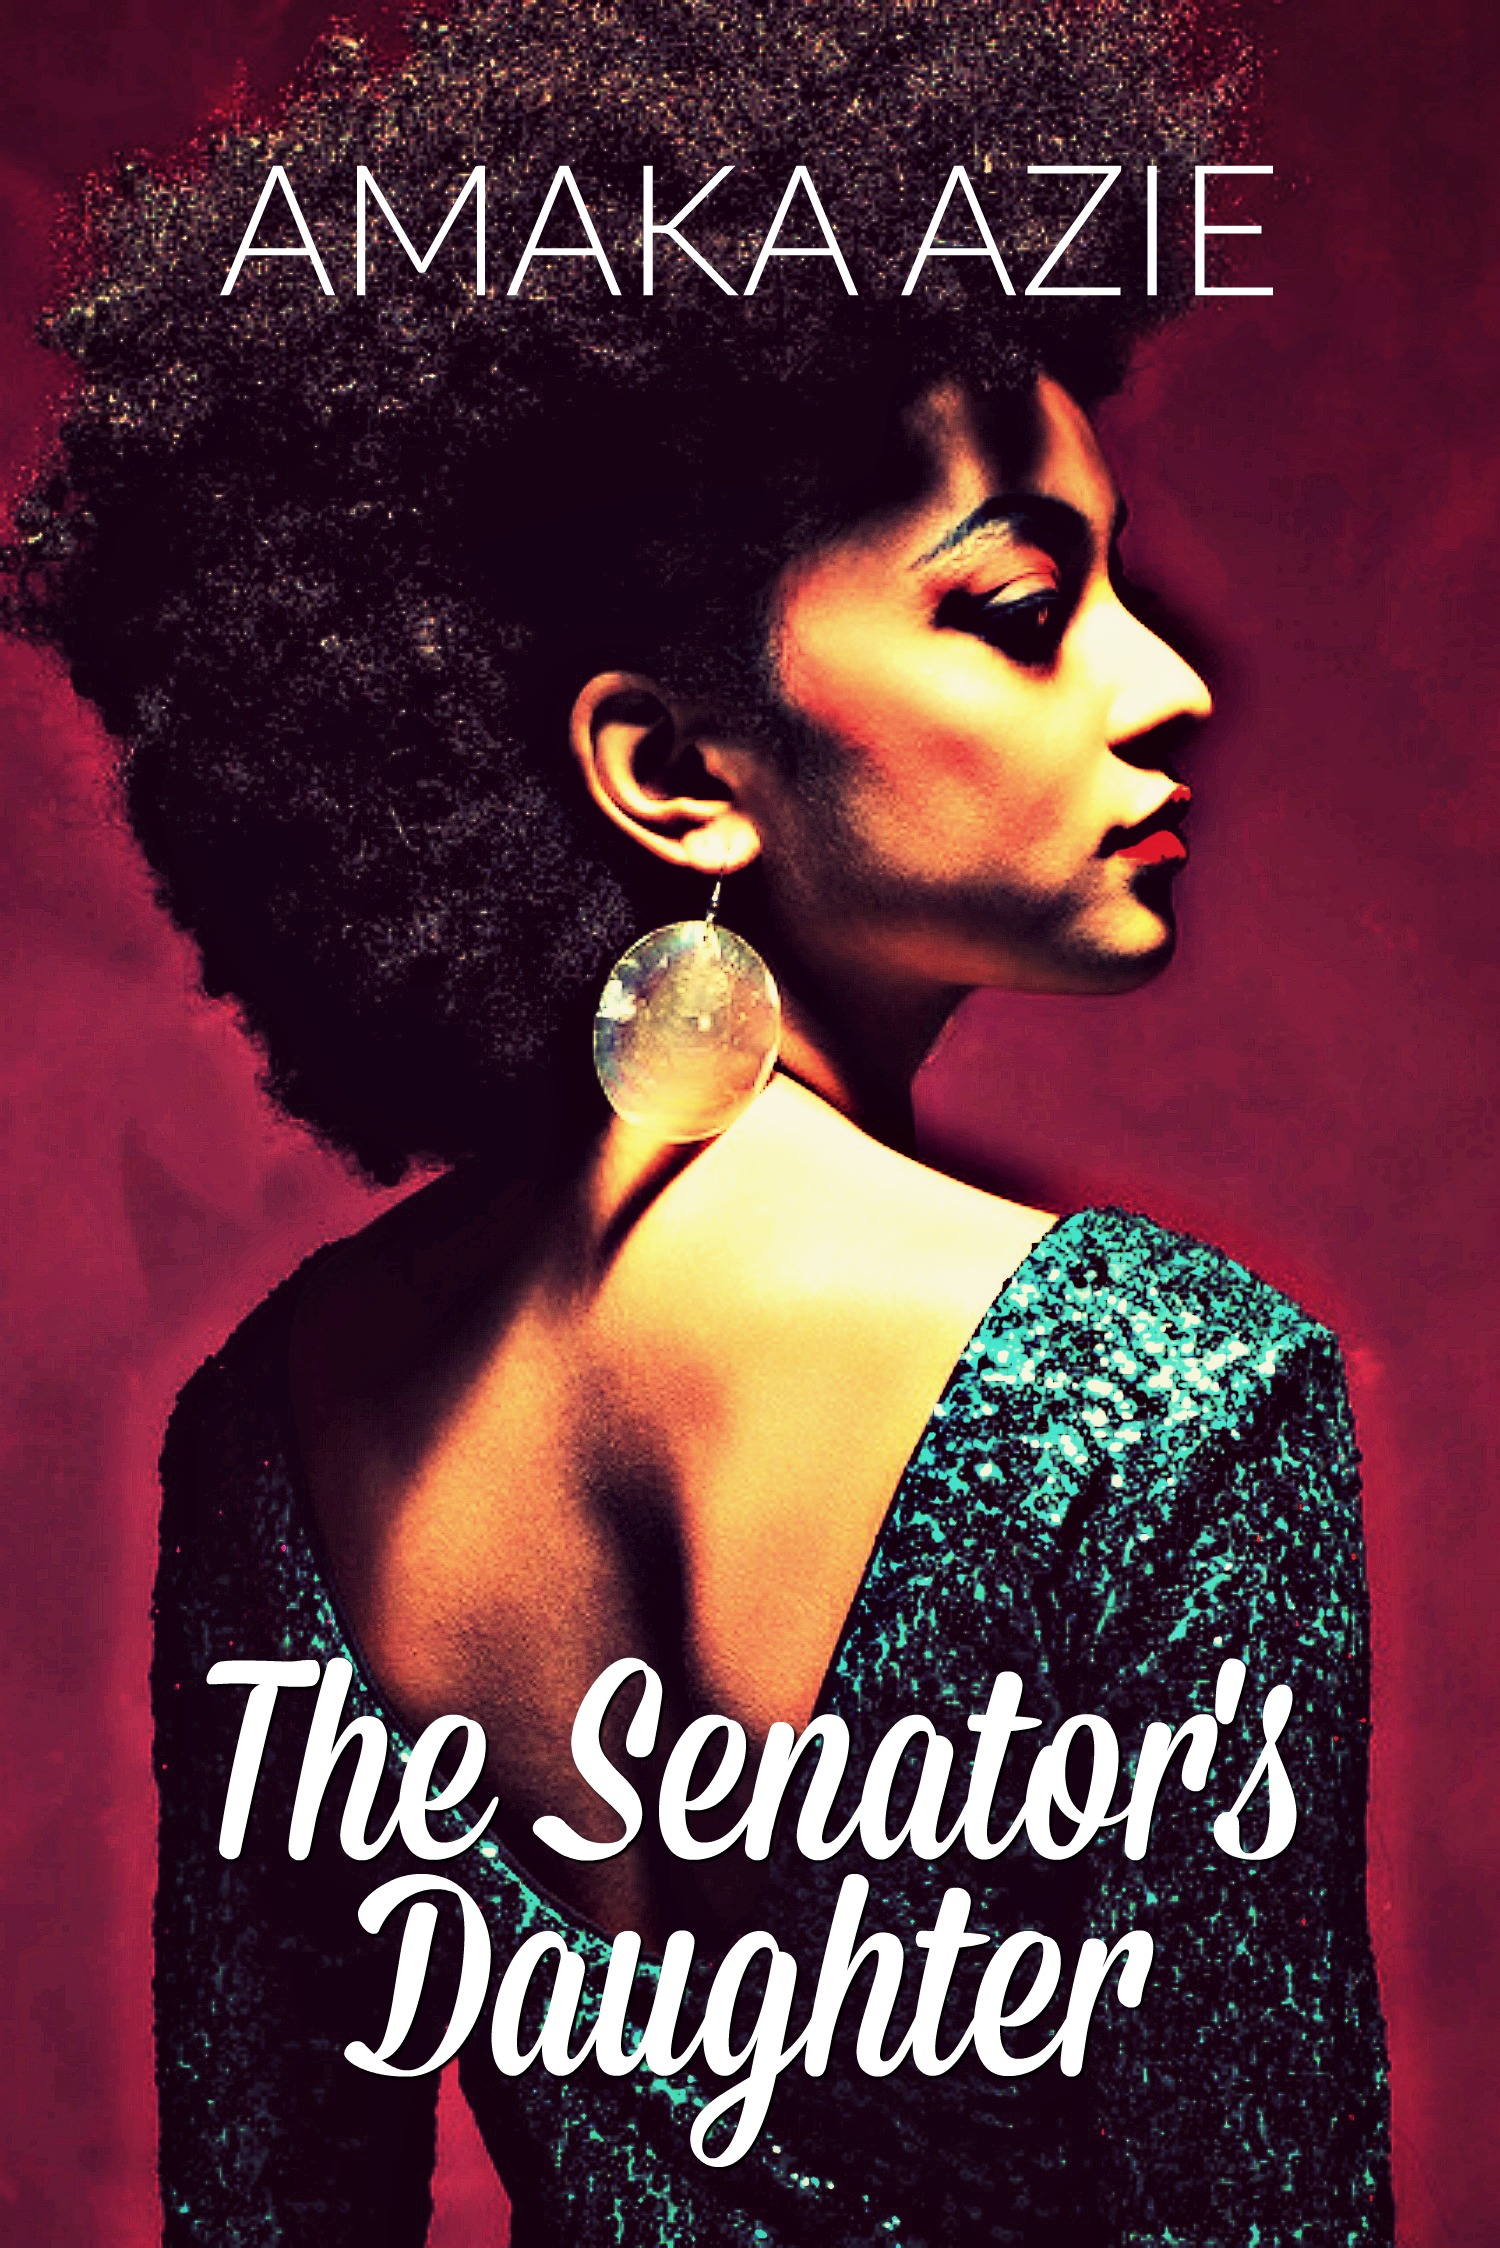 The Senator's Daughter by Amaka Azie